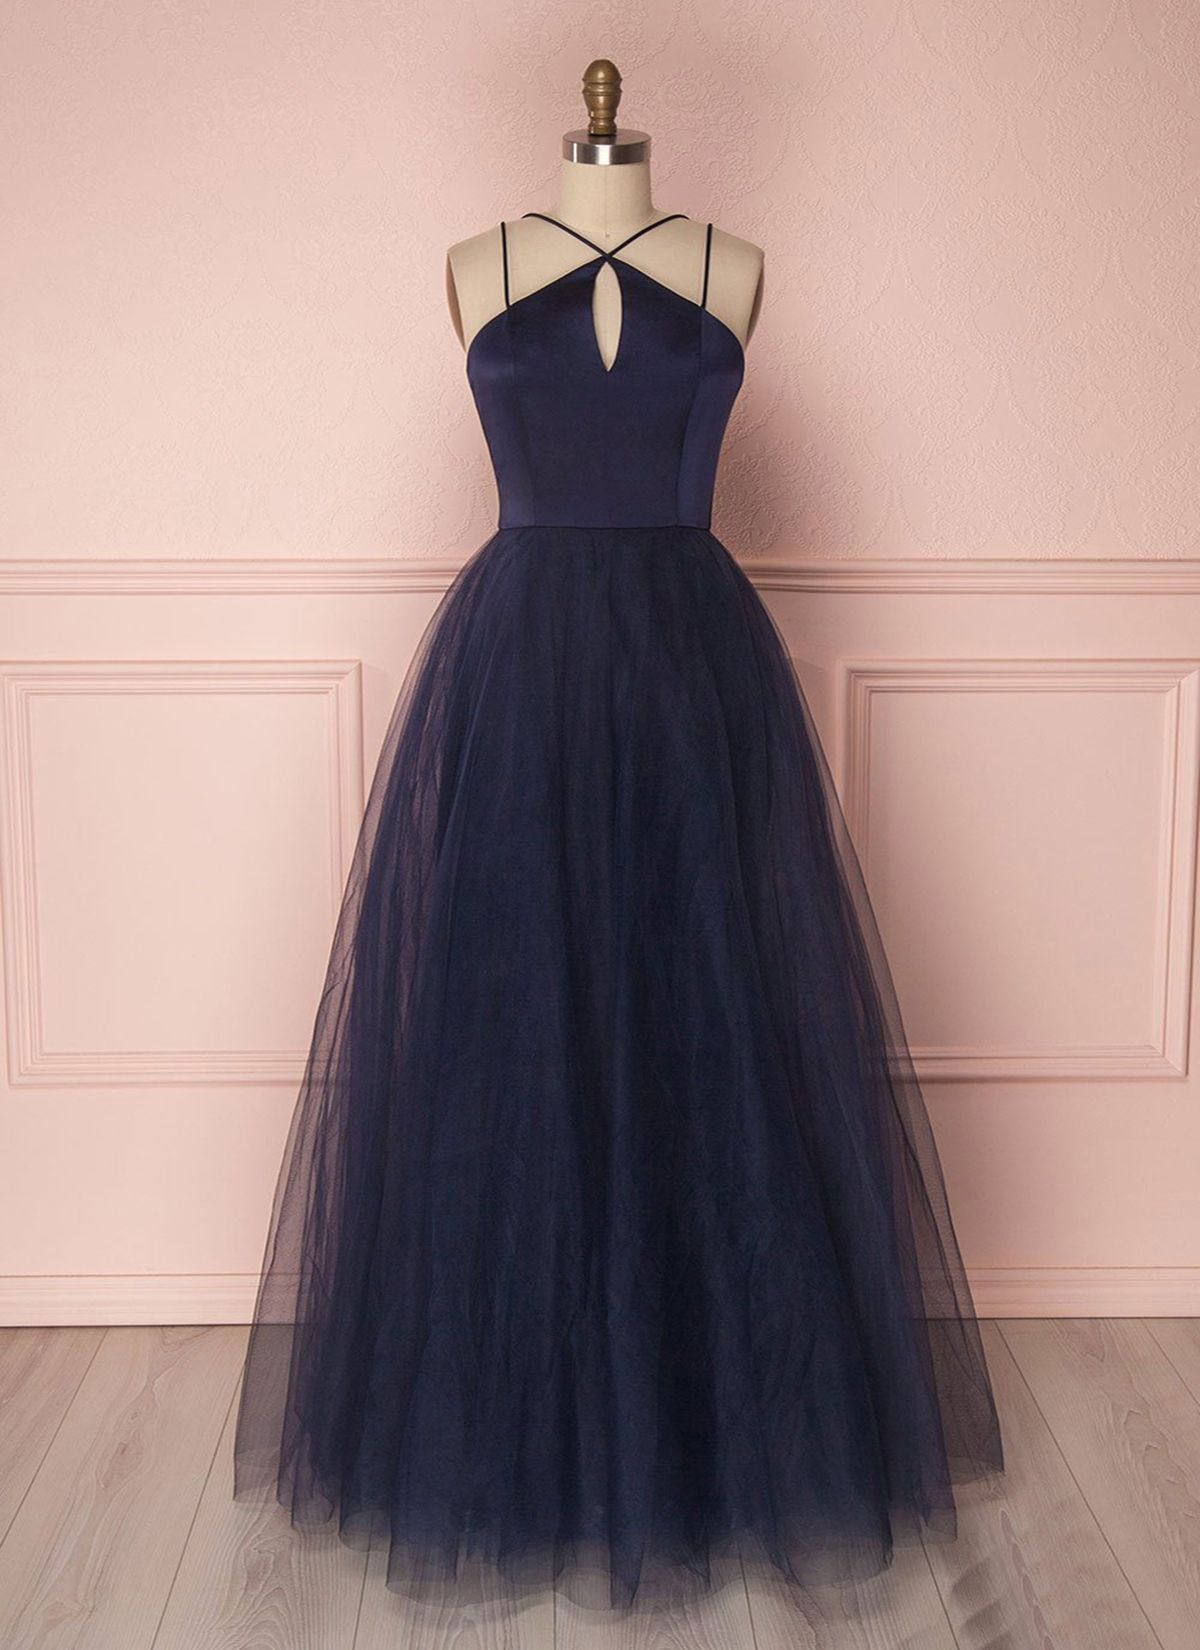 Simple navy blue tulle open back long evening dress prom dress from